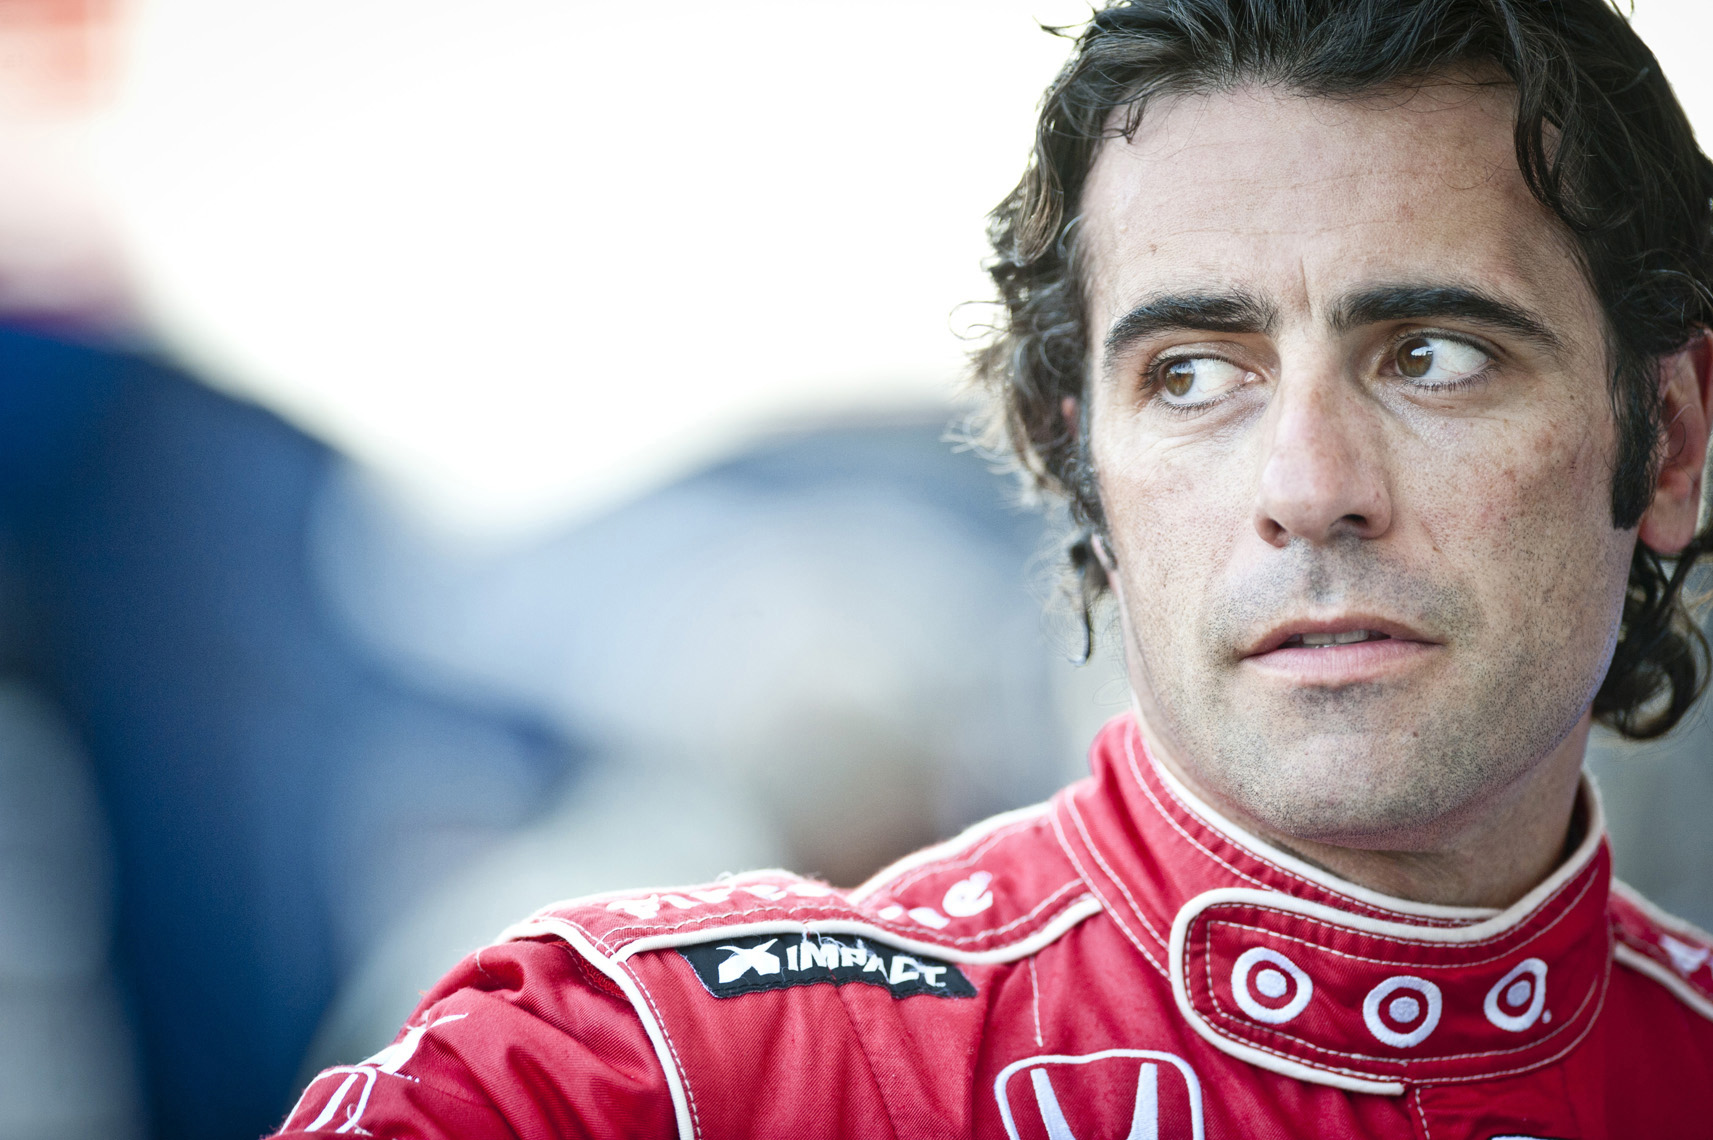 Dario Franchitti, Indy Car Champion